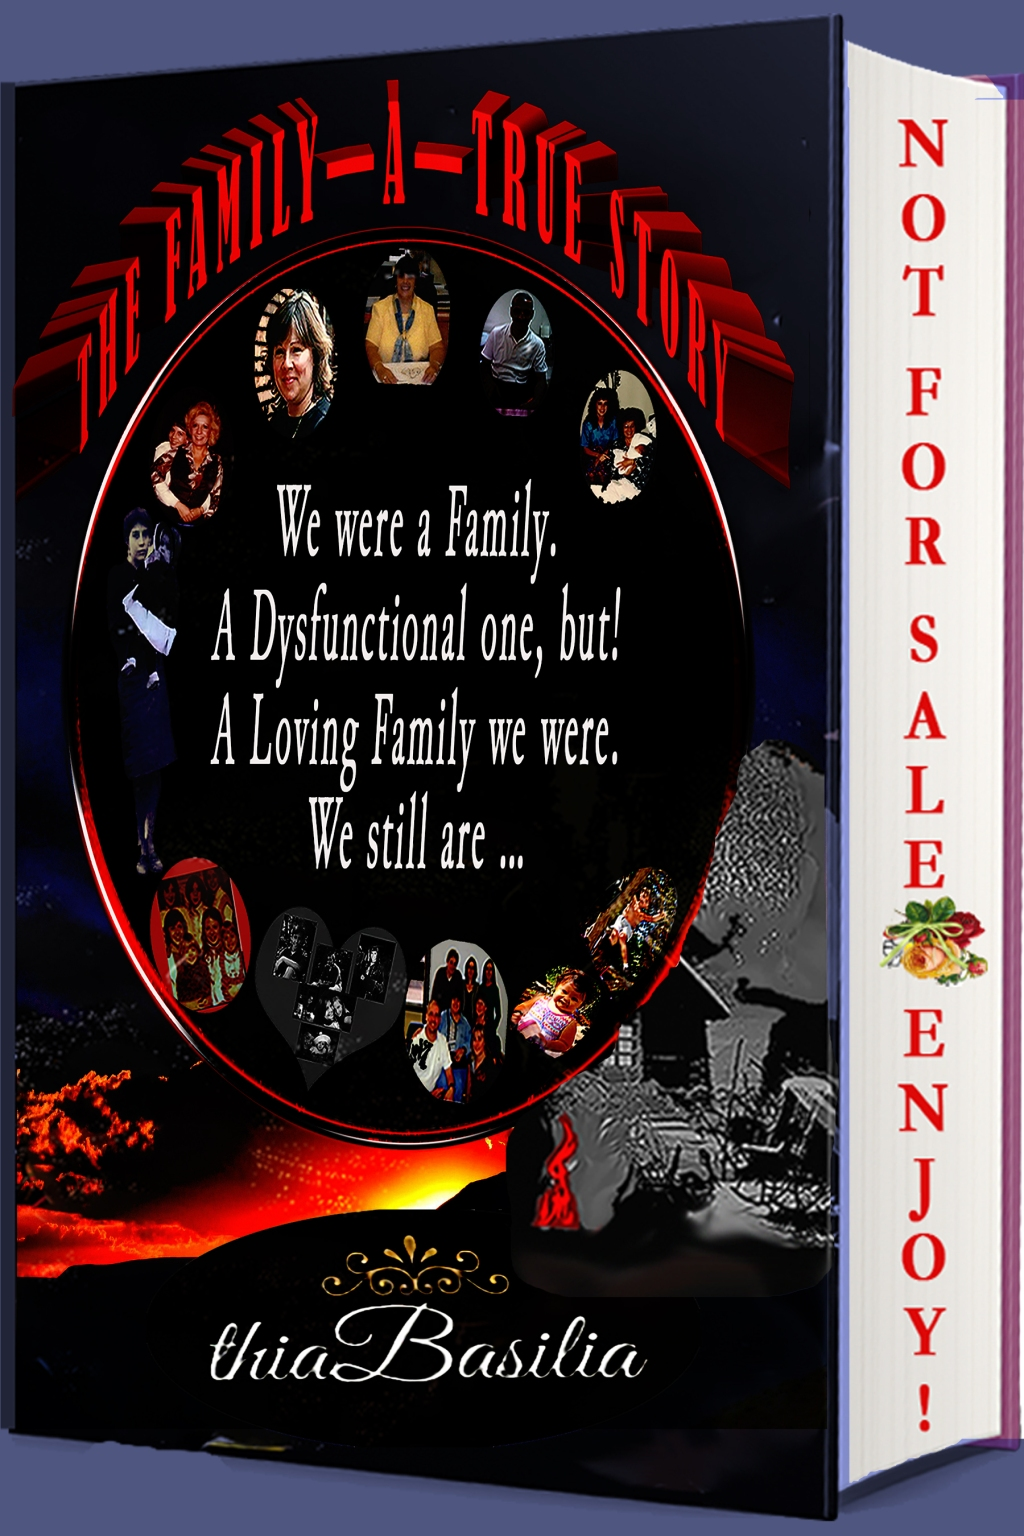 00000000000 Bookcover NEW FINISHED 3D RED on Mockup 056 The Family A True Story